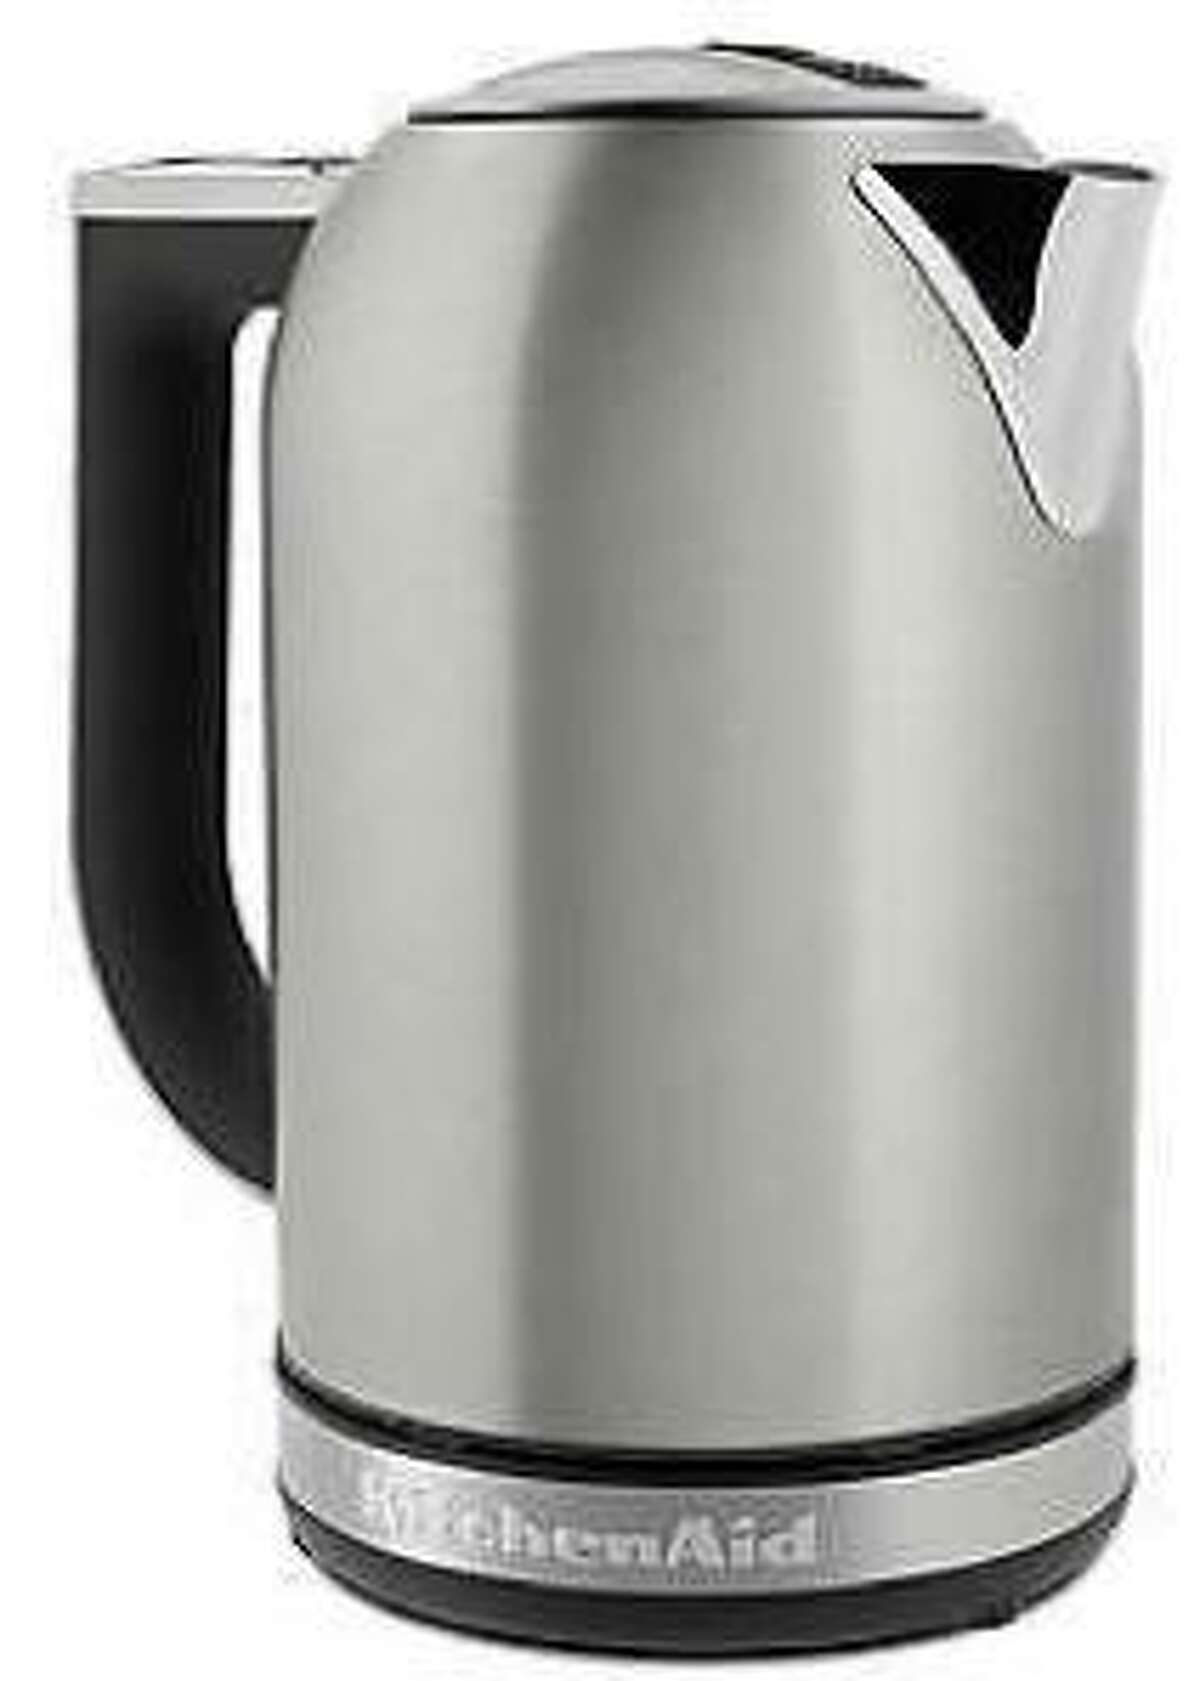 Whirlpool has recalled about 40,200 KitchenAid electric kettles because the handle can come loose and separate from the kettle, causing hot contents to spill and potentially burn the user.